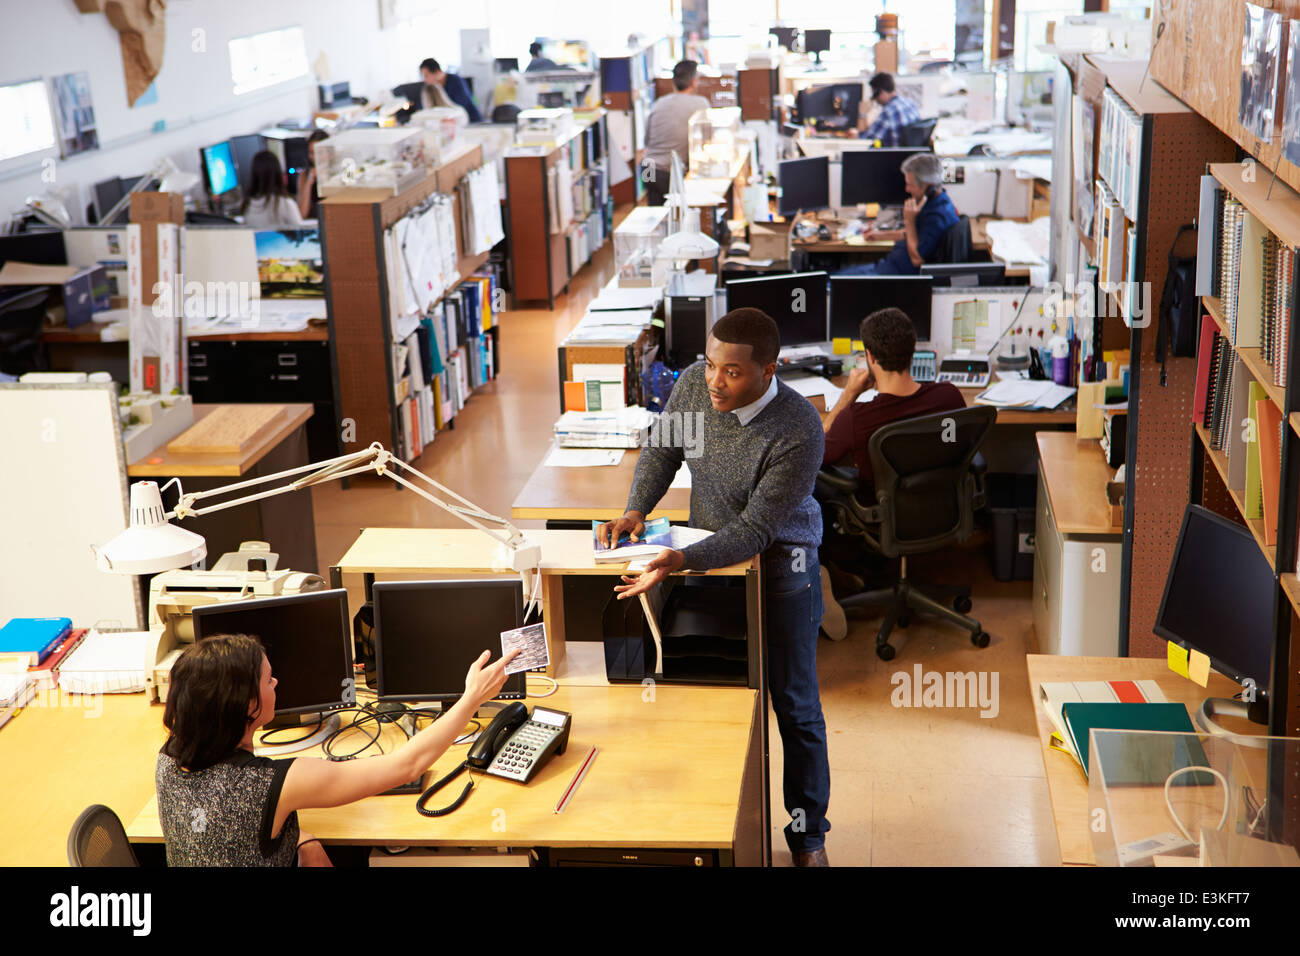 Interior Of Busy Architect's Office With Staff Working - Stock Image